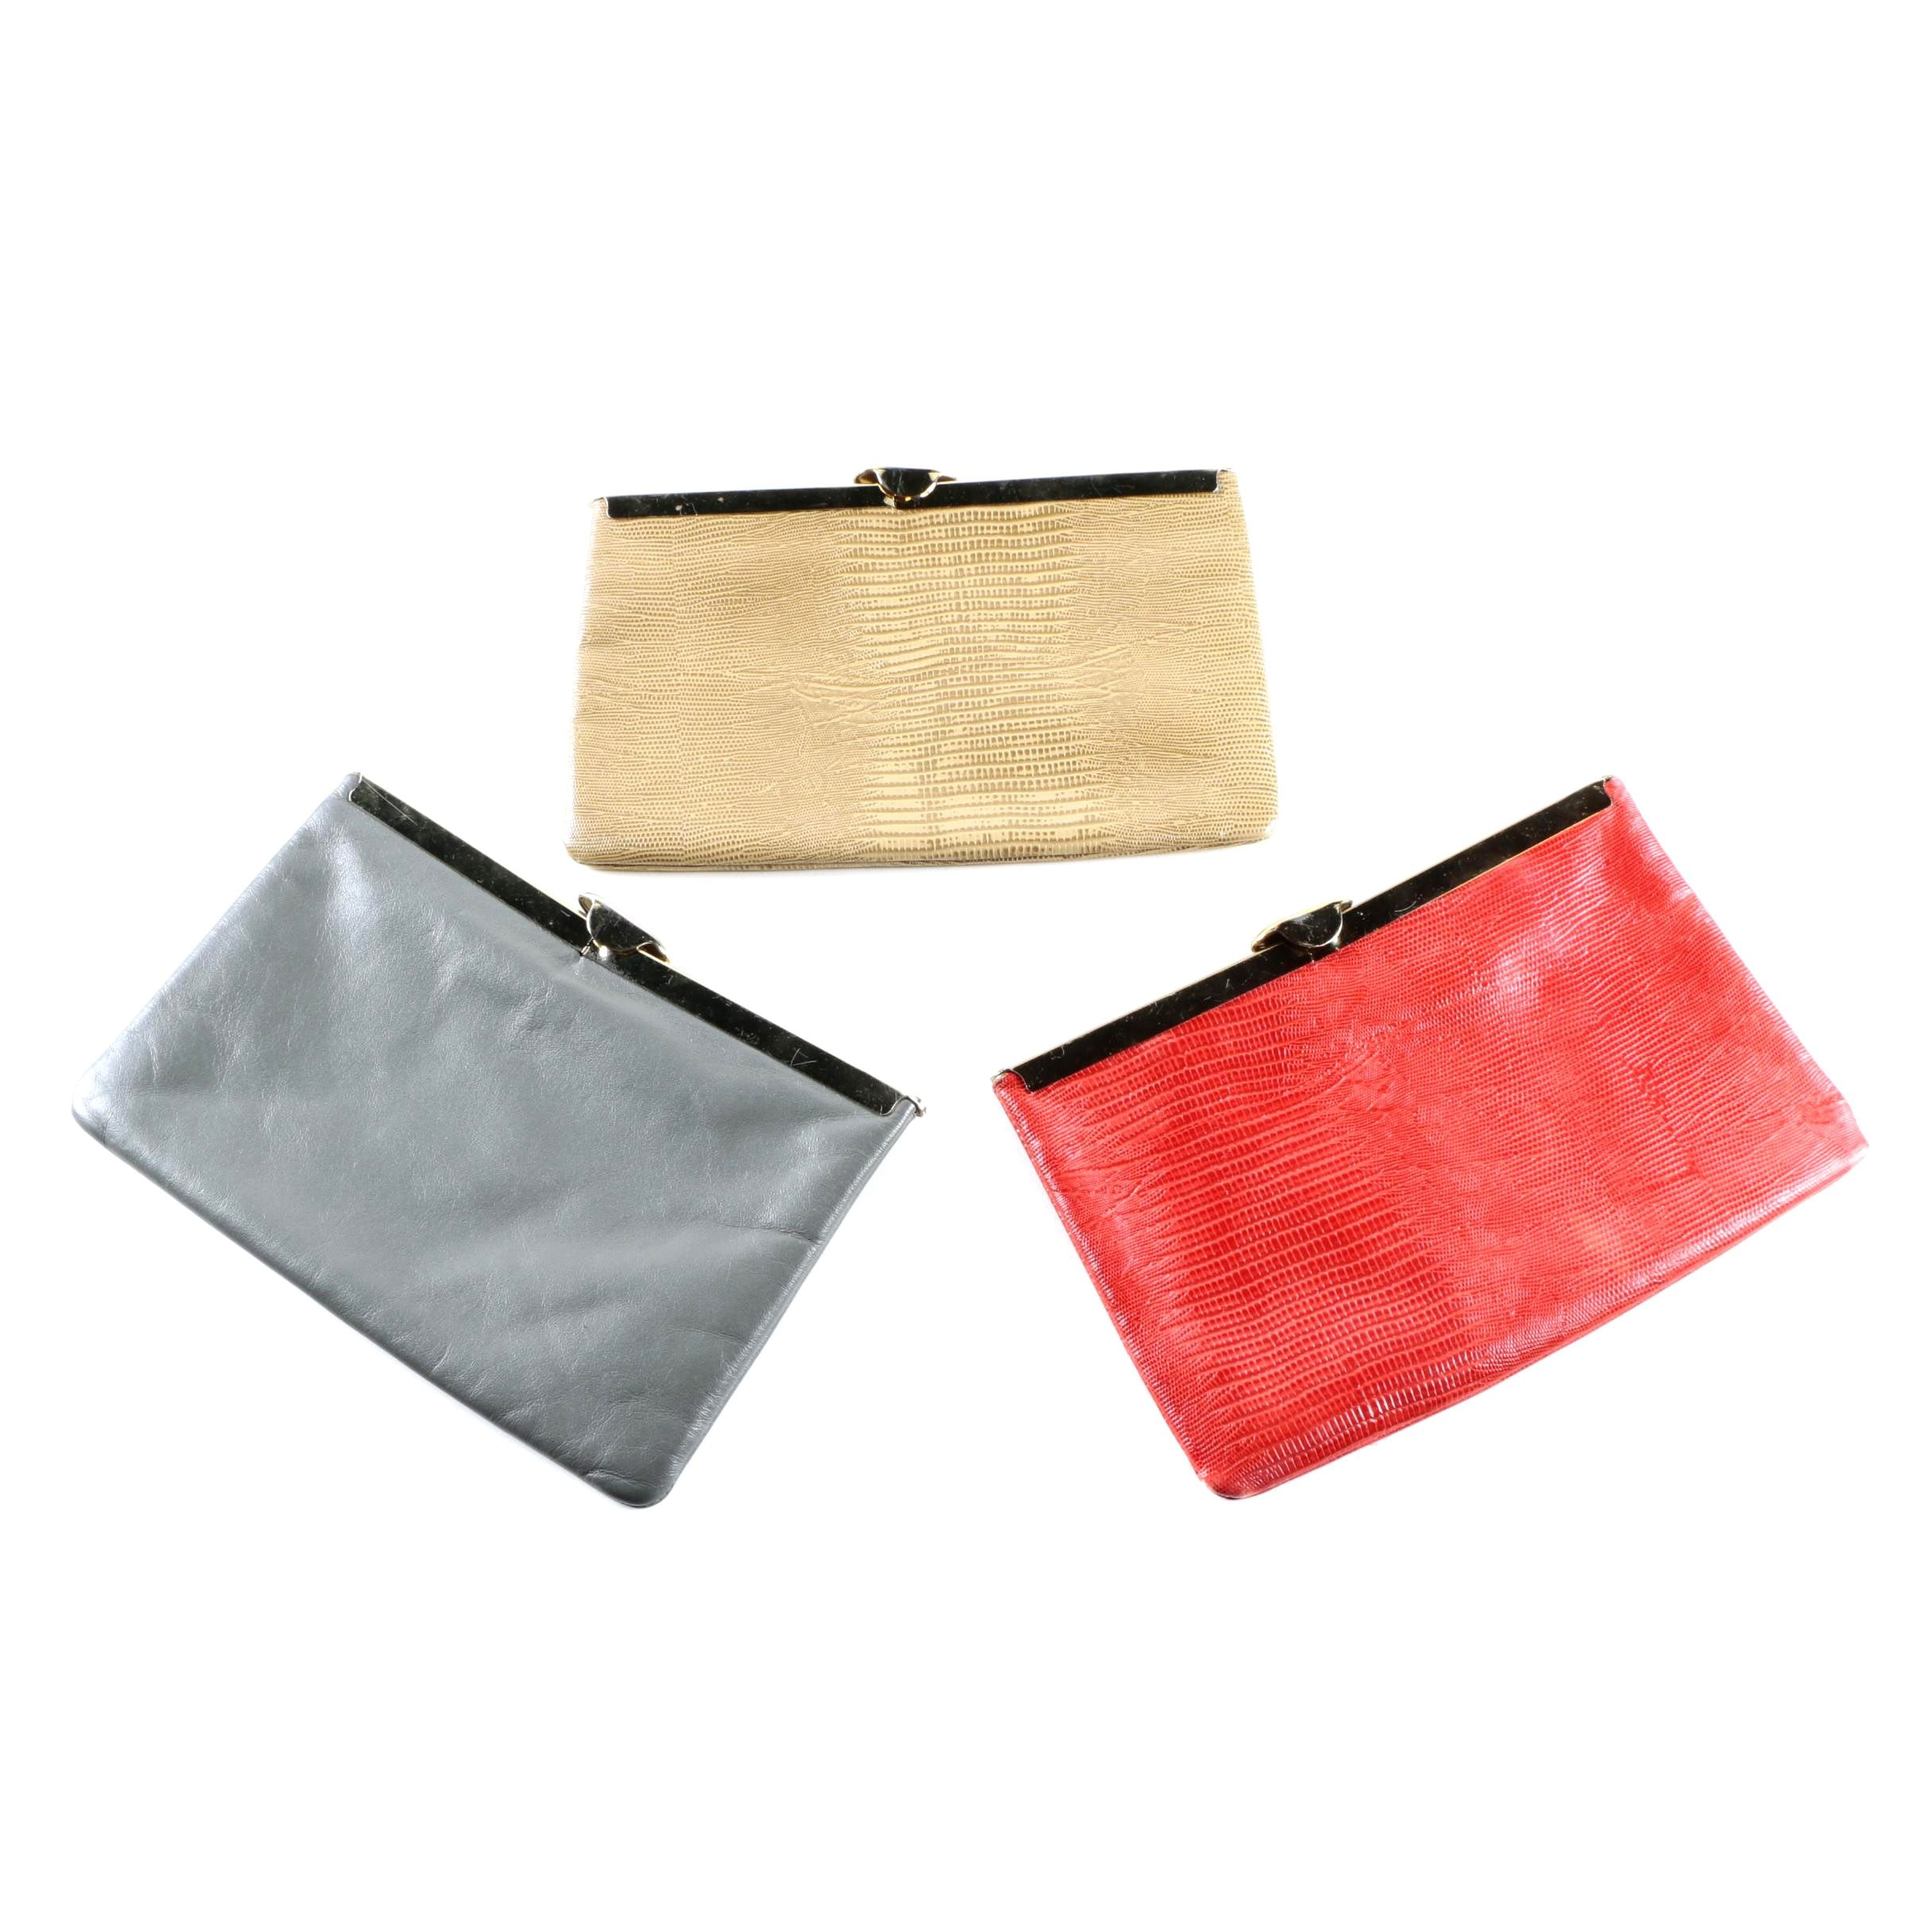 Vintage Etra Leather Clutches